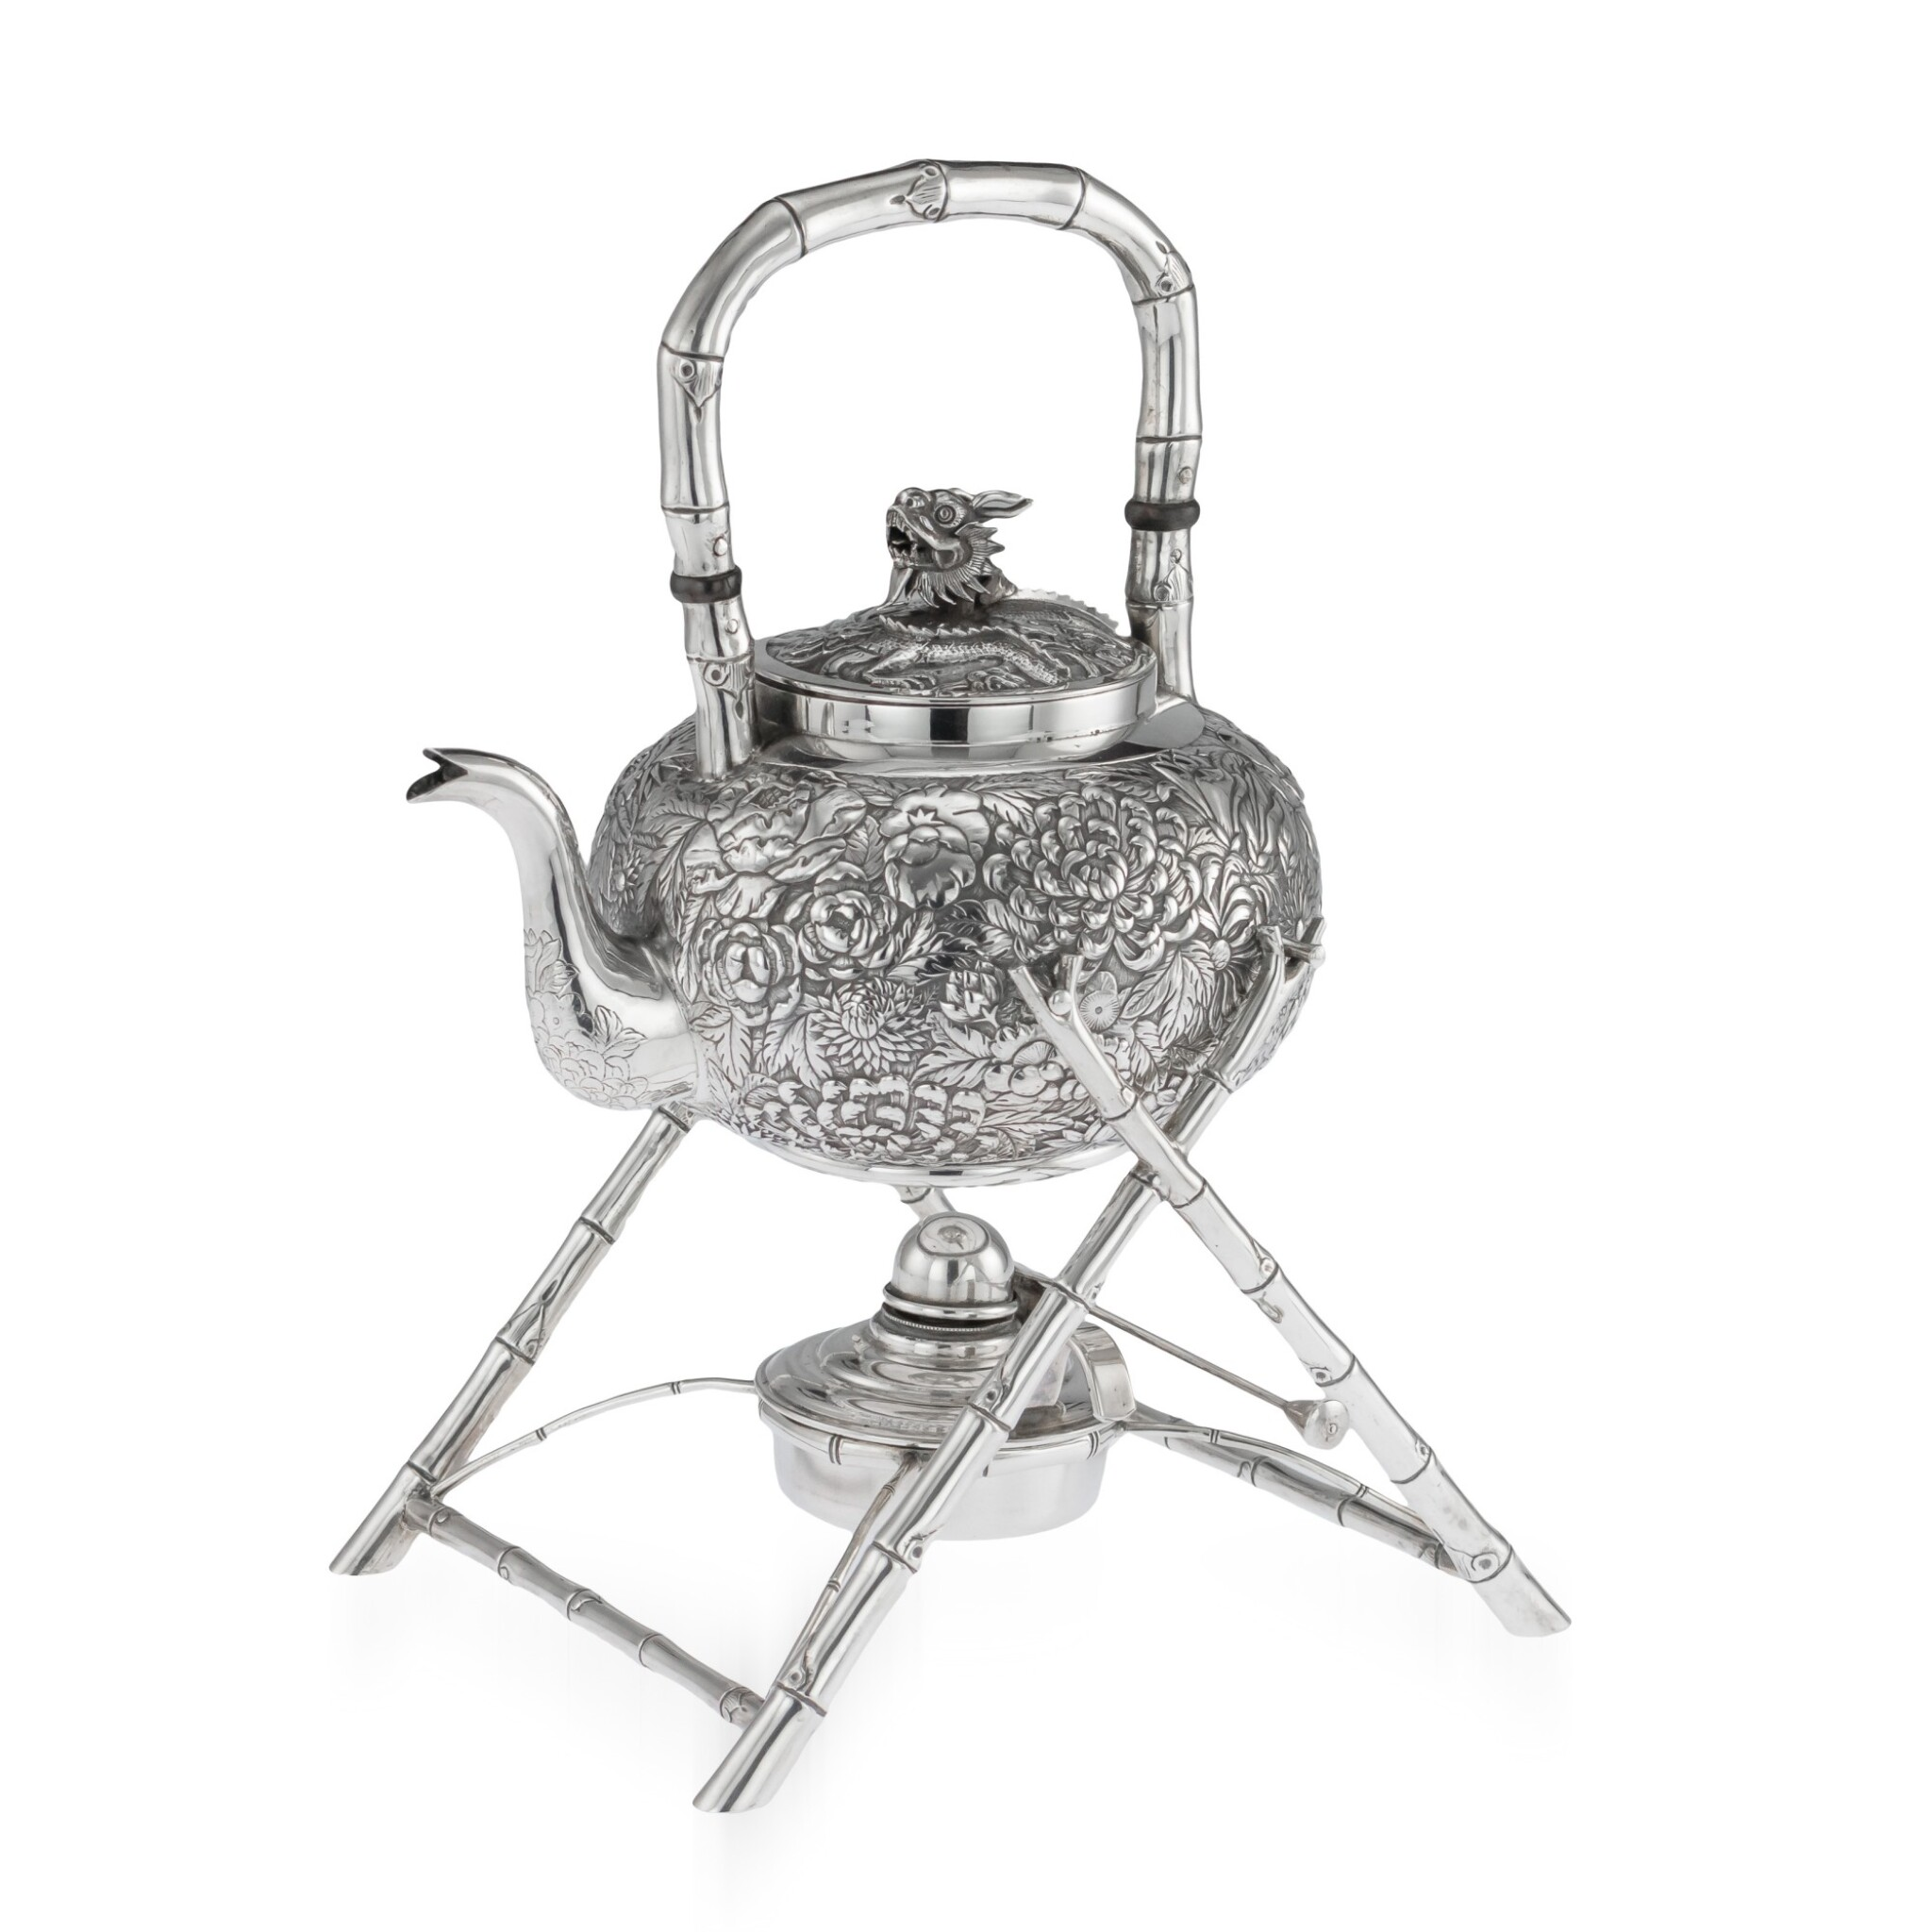 View full screen - View 1 of Lot 6. A CHINESE EXPORT SILVER TEA KETTLE AND BURNER ON STAND, PROBABLY WANG HING, CANTON OR HONG KONG, CIRCA 1900.